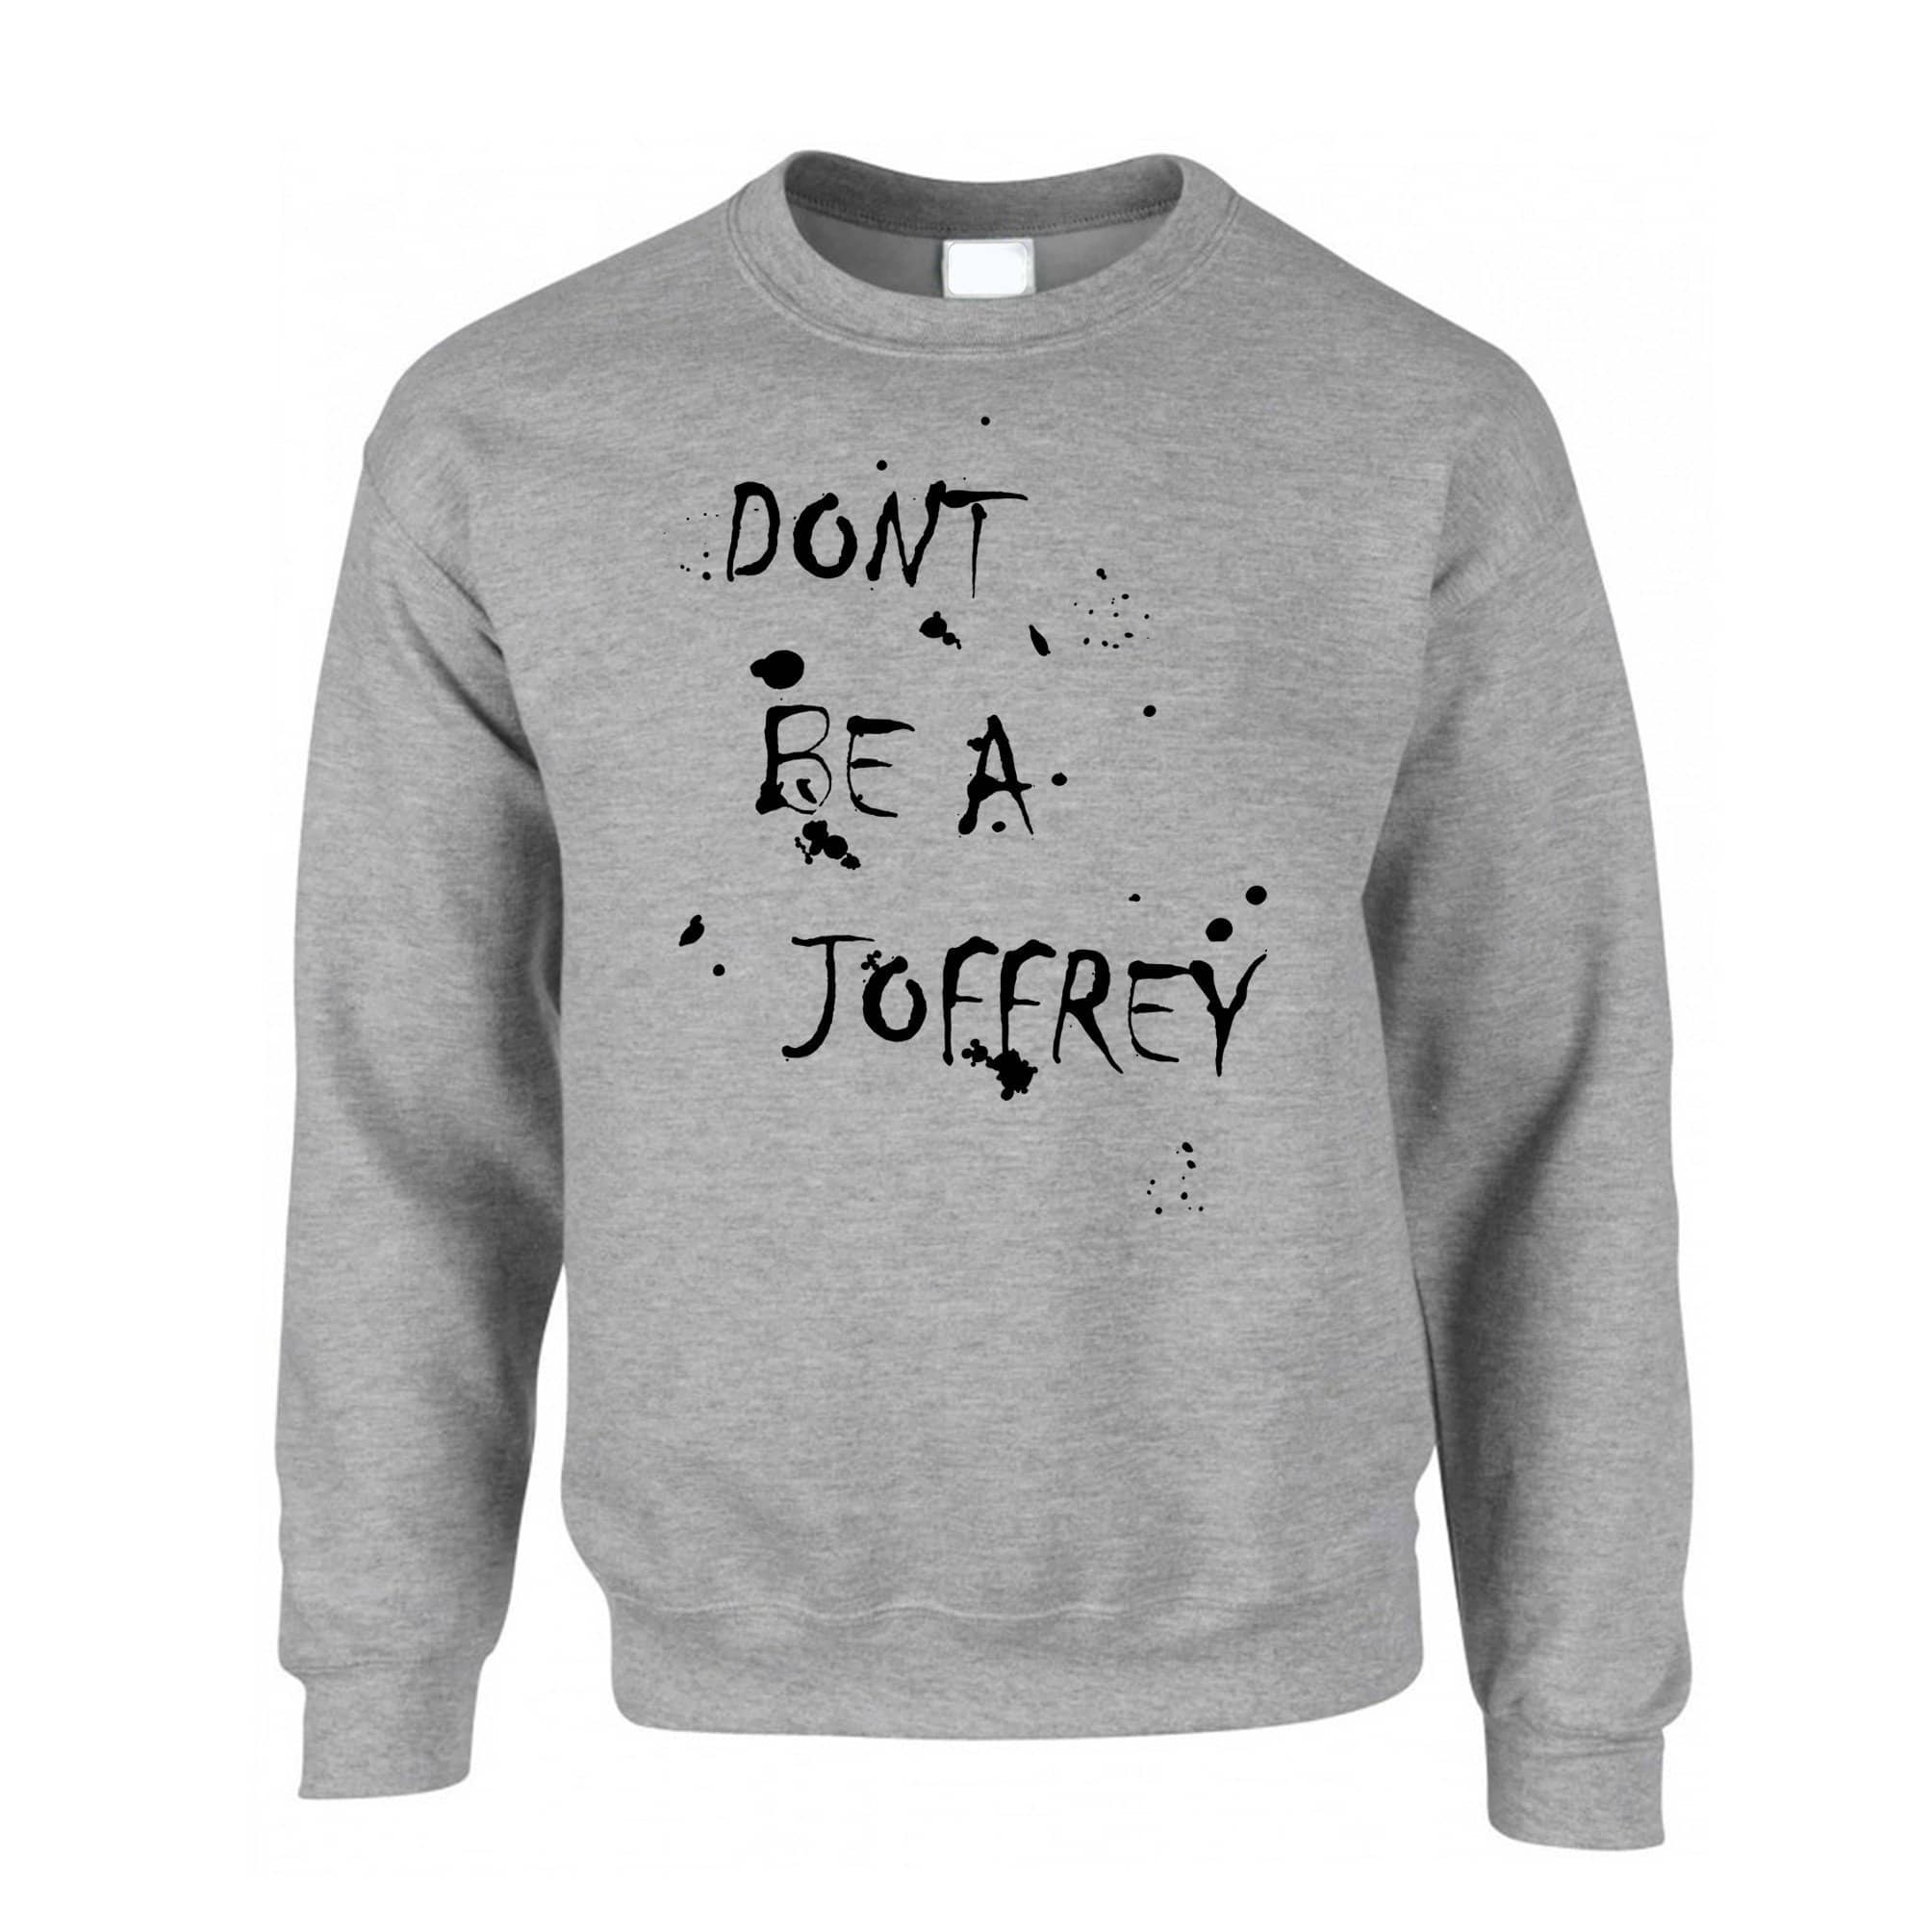 Don't Be a Joffrey Funny Sweatshirt Jumper